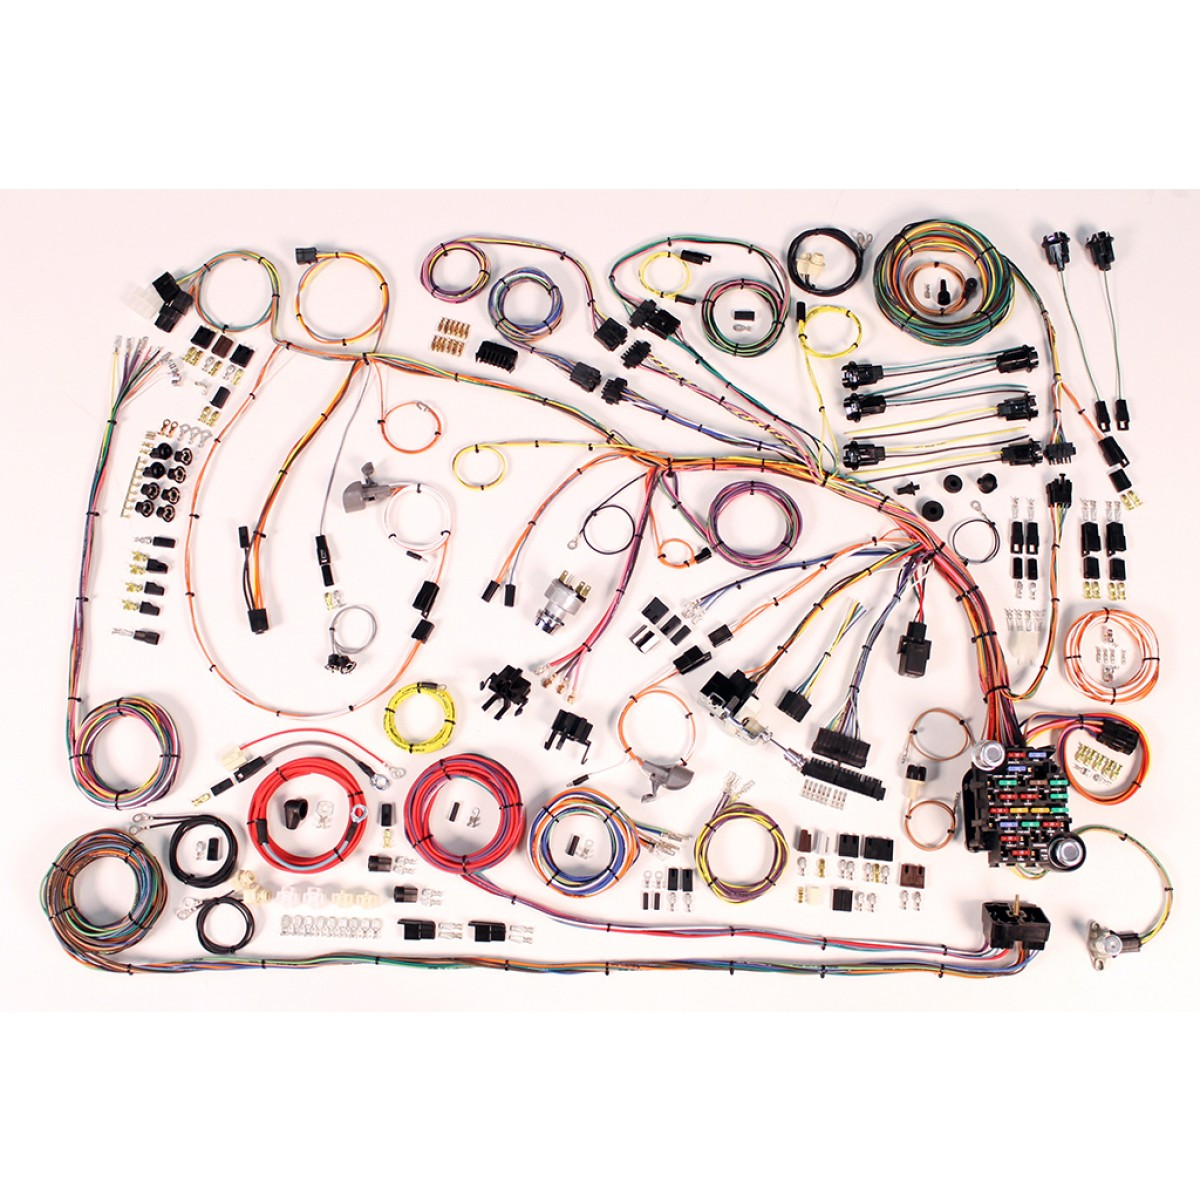 wiring harness kit 1966 1968 impala part 510372 66 68 impala full wire harness 510372 1966 1968 impala wire harness complete wiring harness kit 1966 complete wiring harness at panicattacktreatment.co